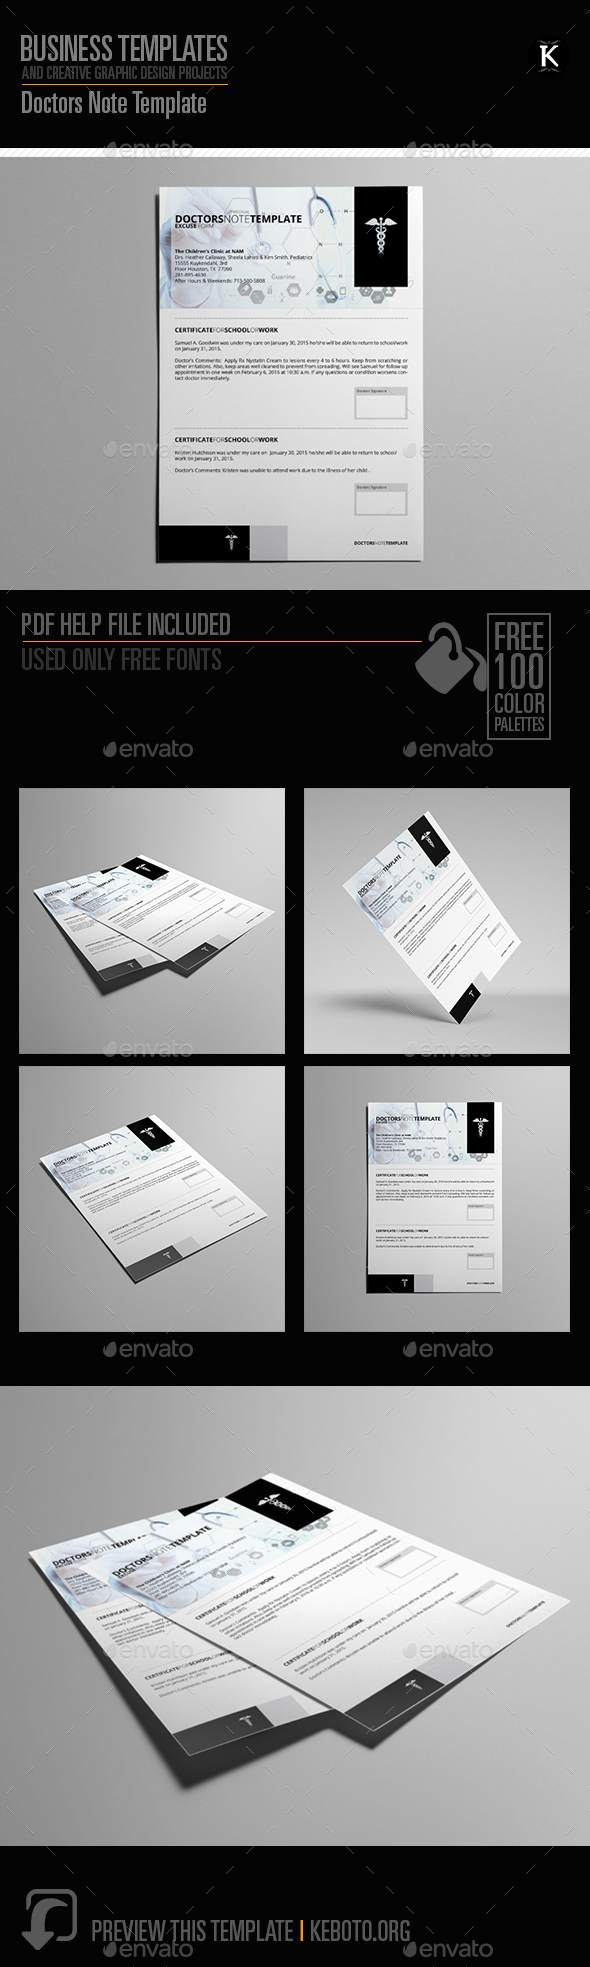 Doctors Note Template by Keboto | GraphicRiver